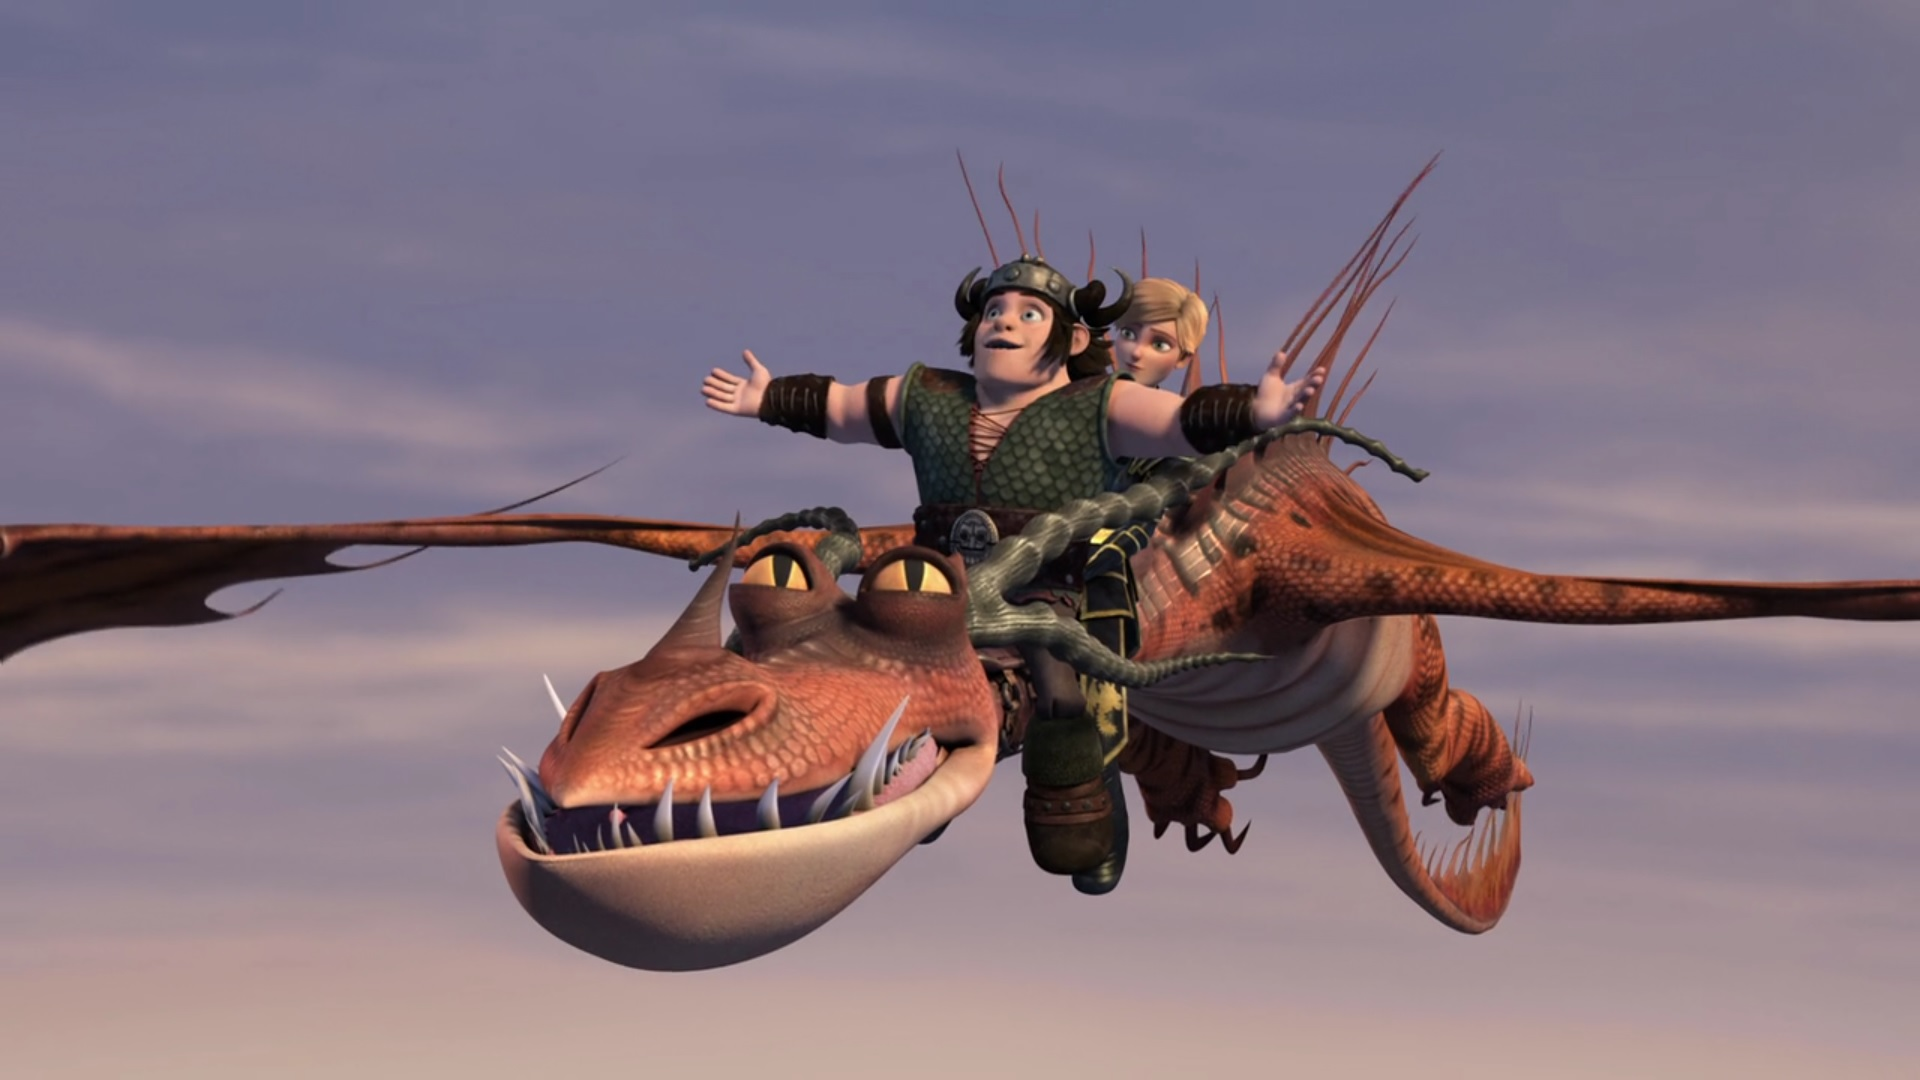 dreamworks dragons season 4 subtitles